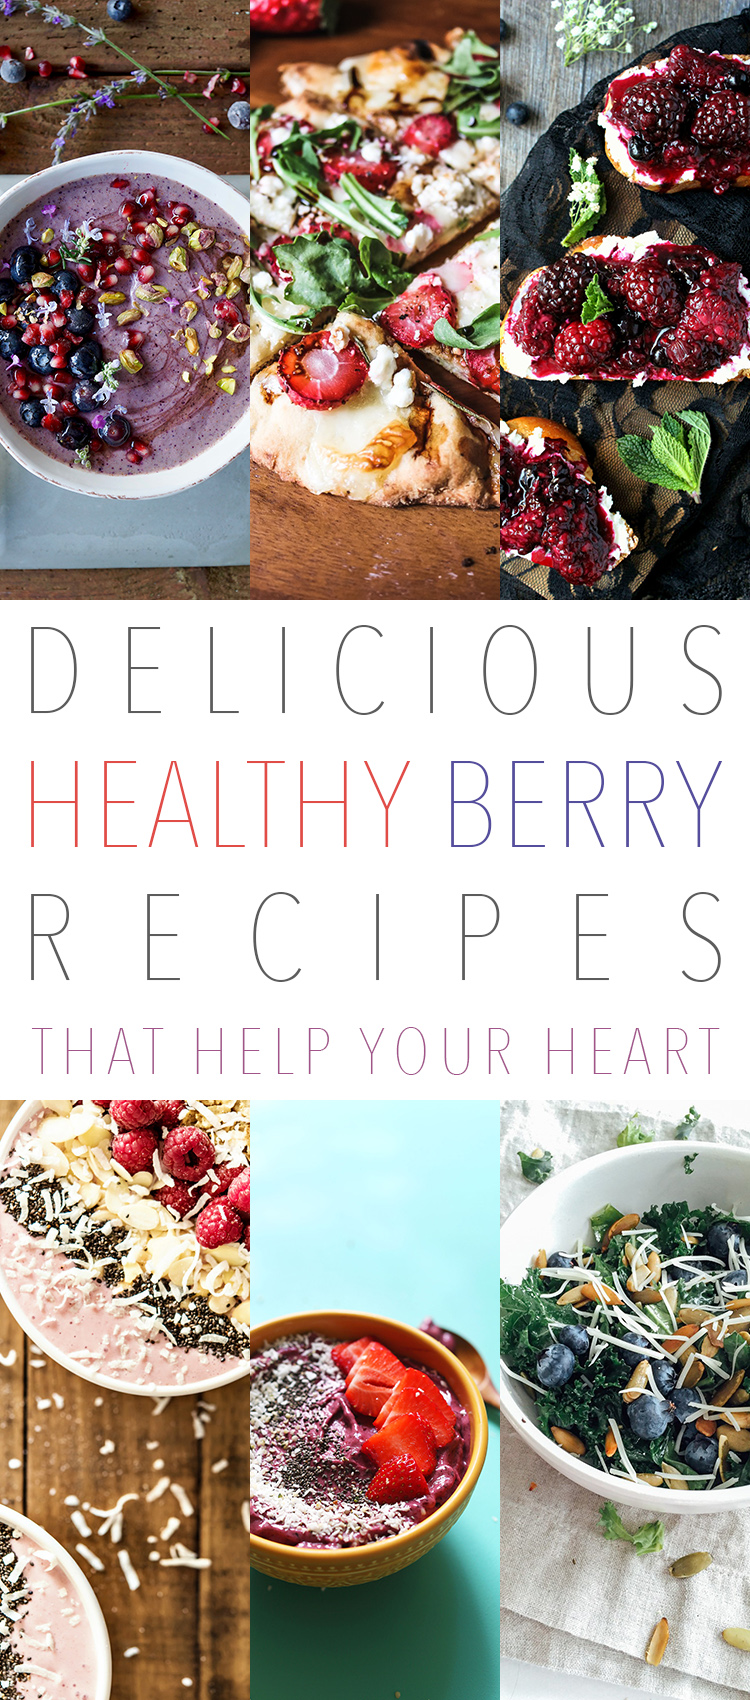 Delicious healthy berry recipes that help your heart the cottage delicious healthy berry recipes that help your heart forumfinder Image collections